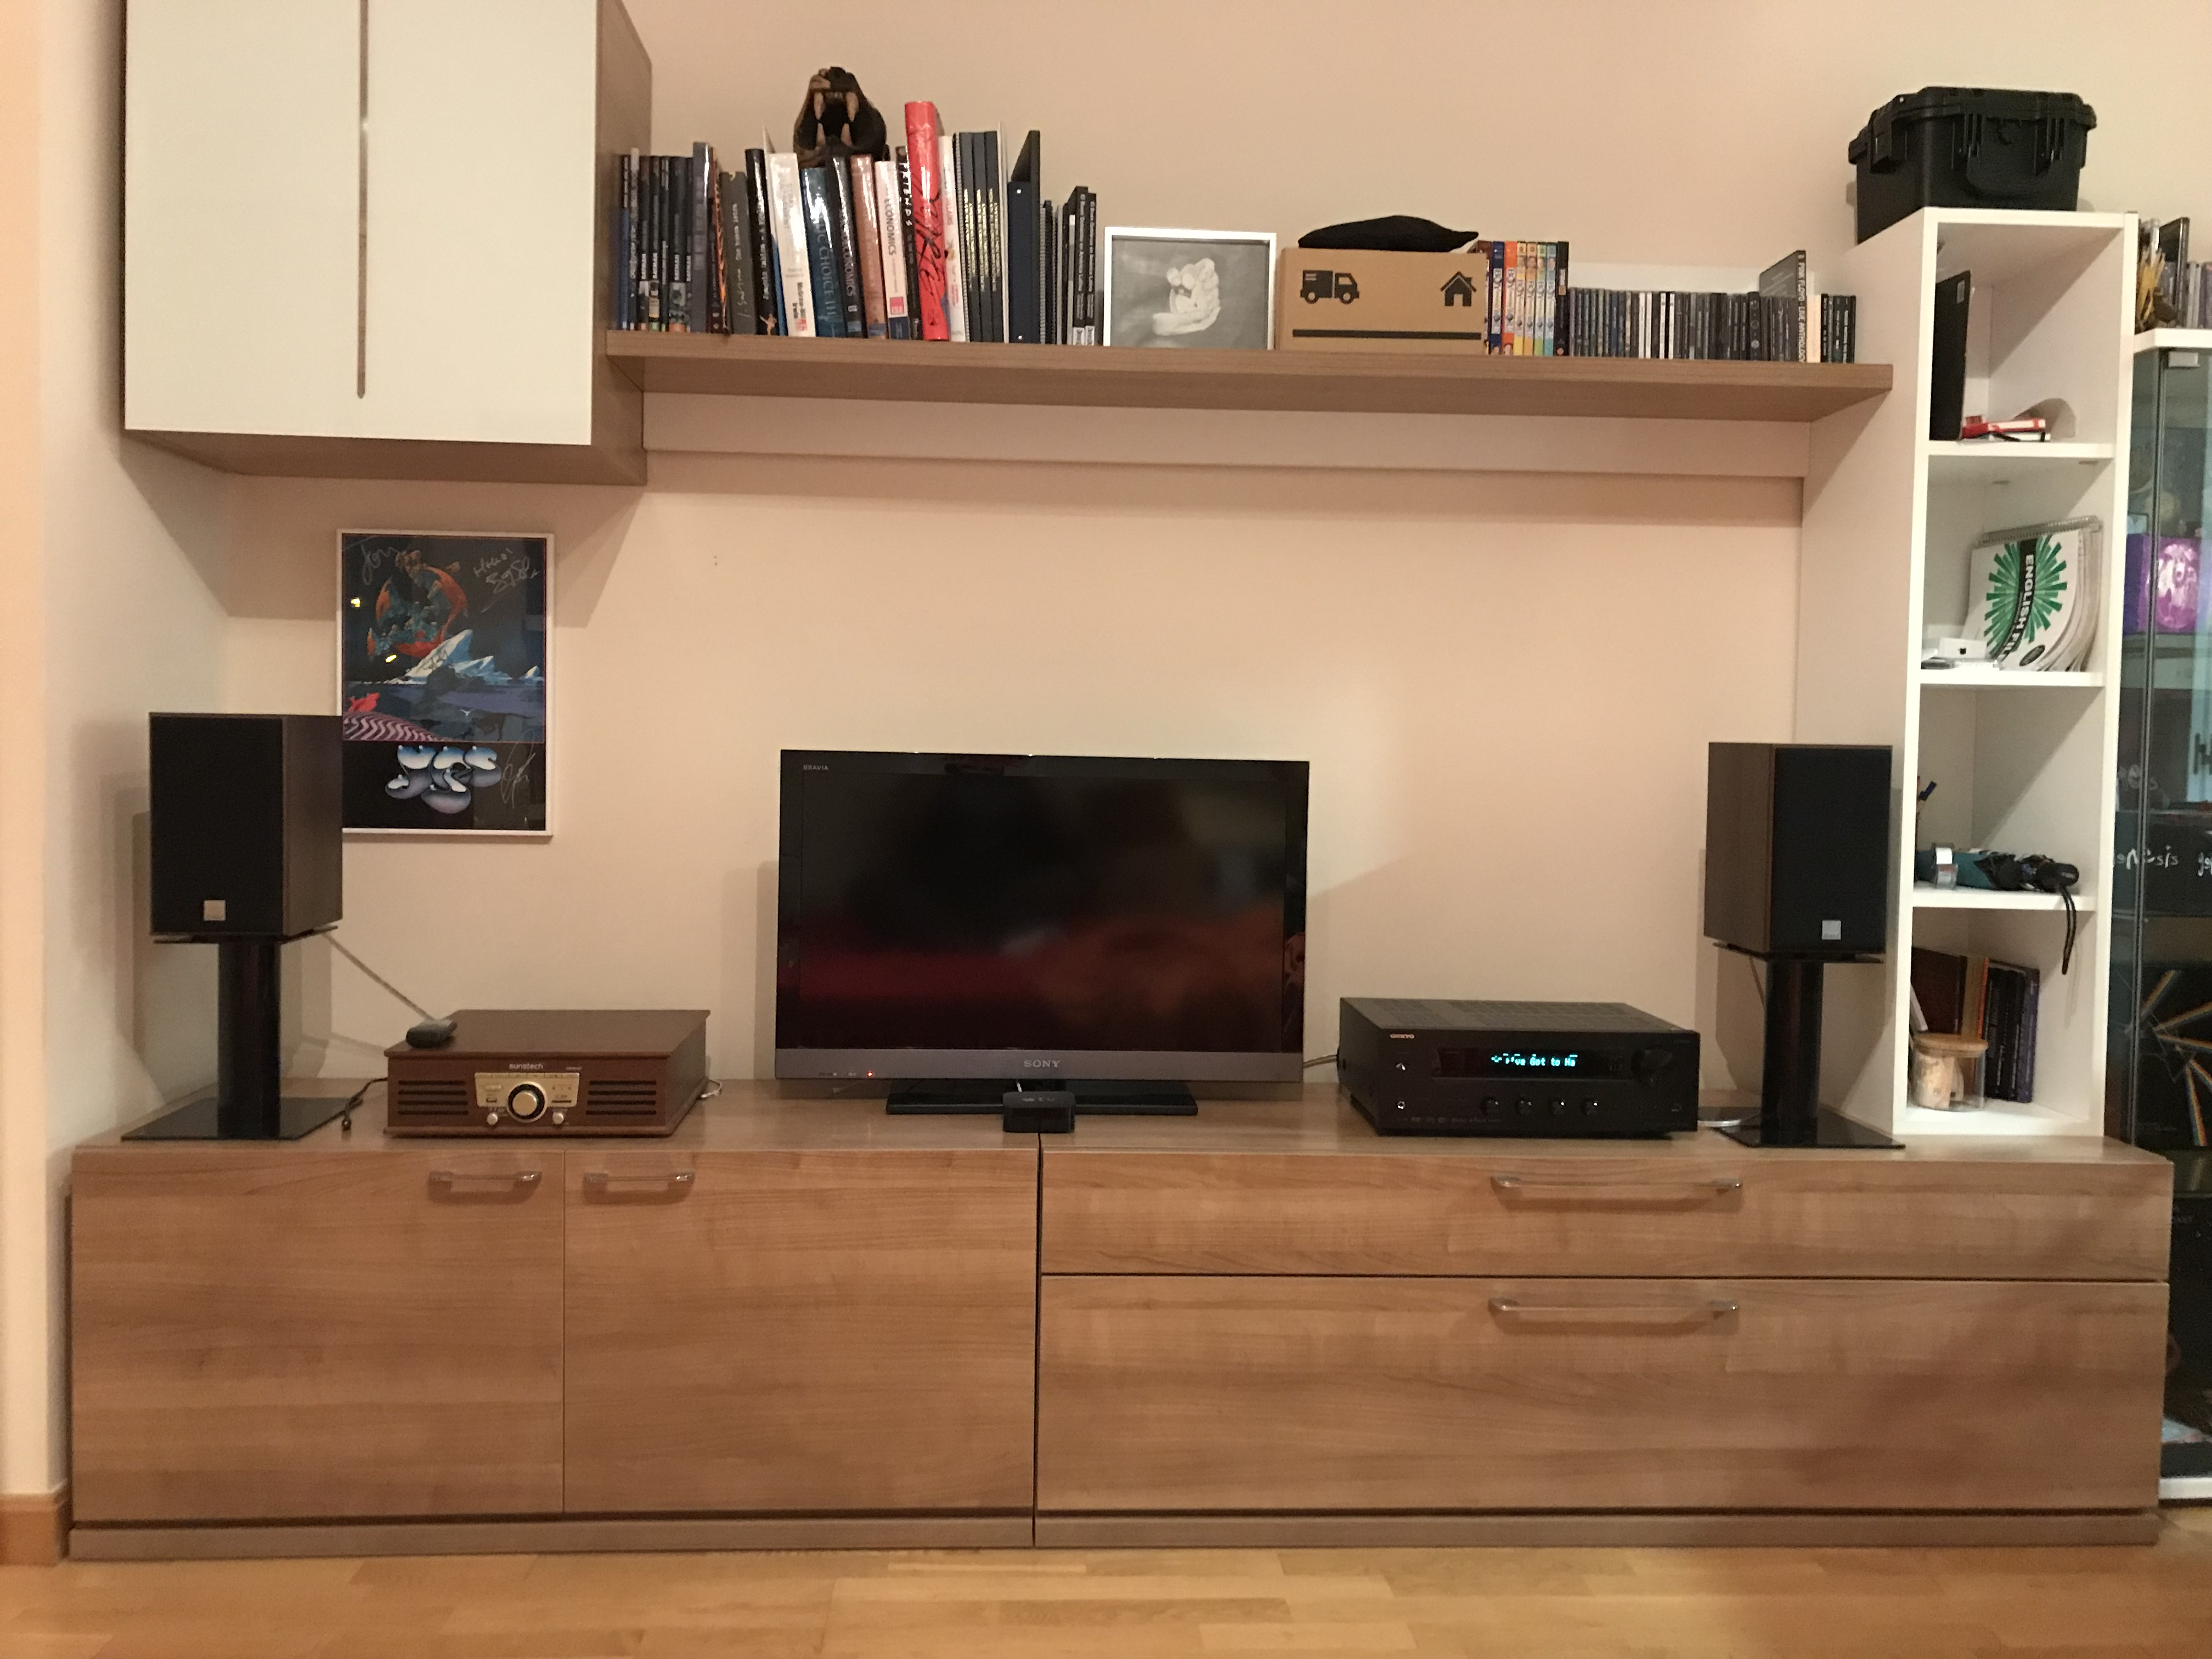 Building my first hi-fi setup looking for advice - Audio